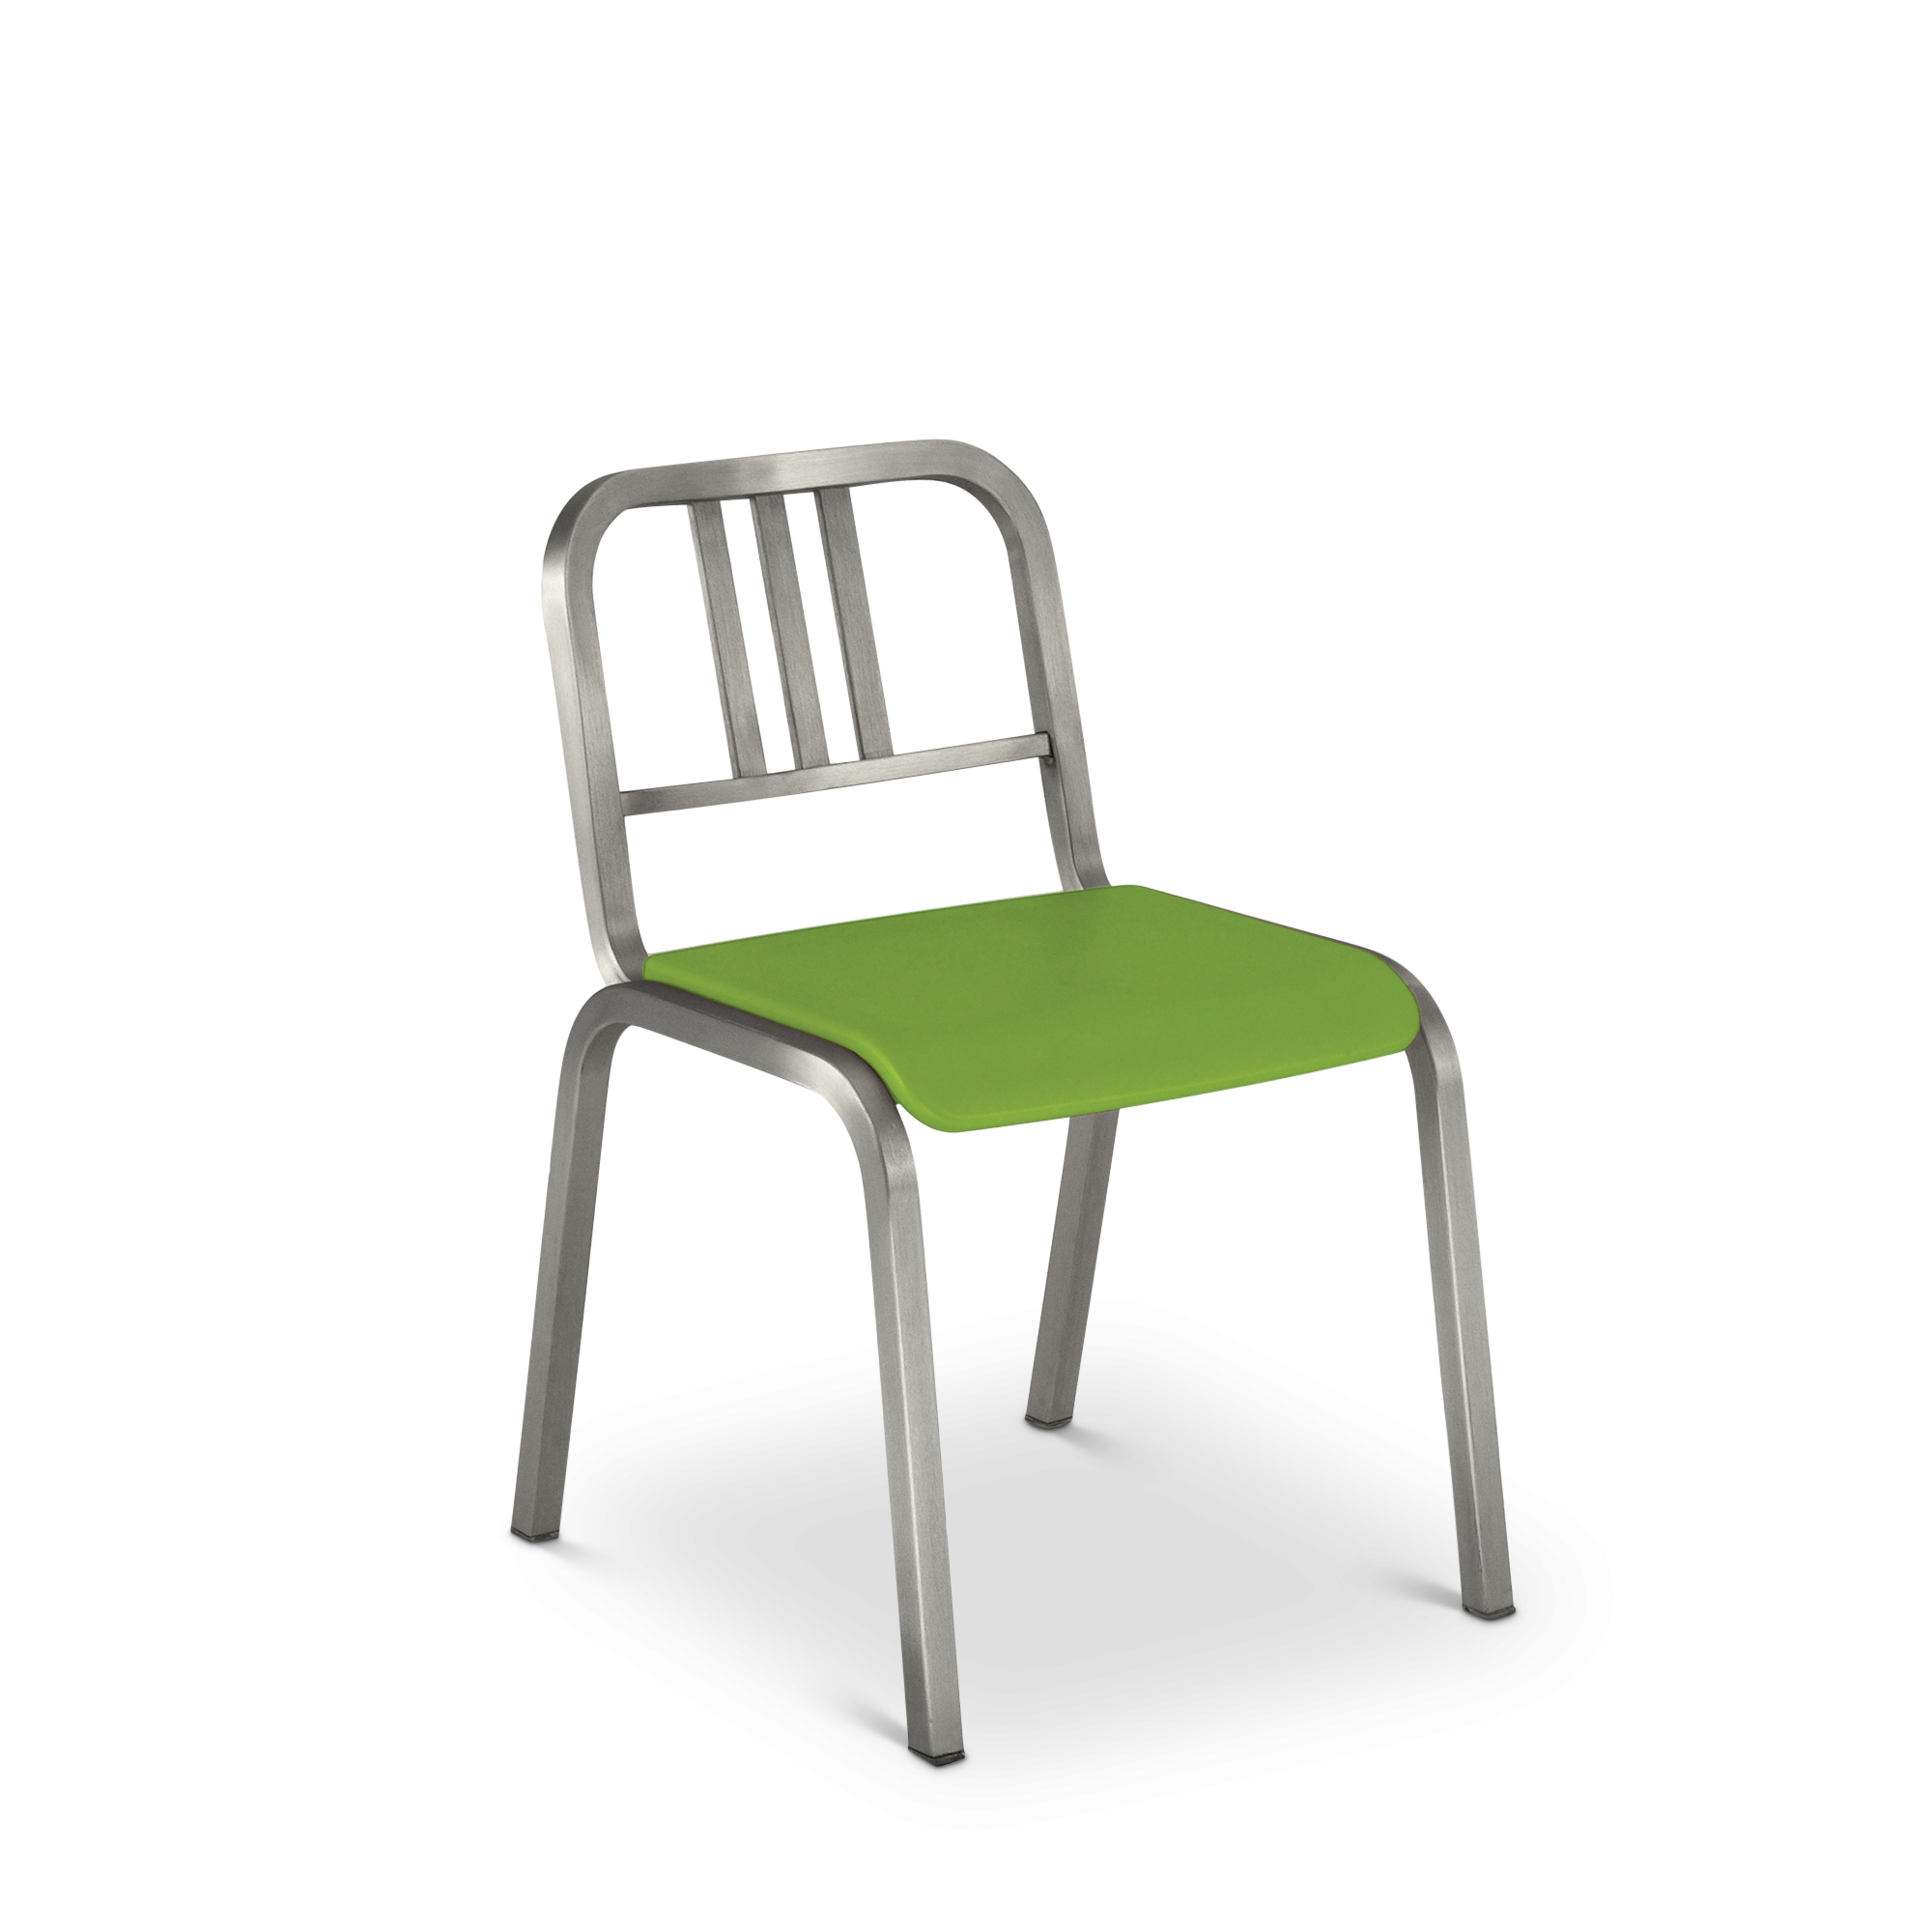 nine-0-chair-green